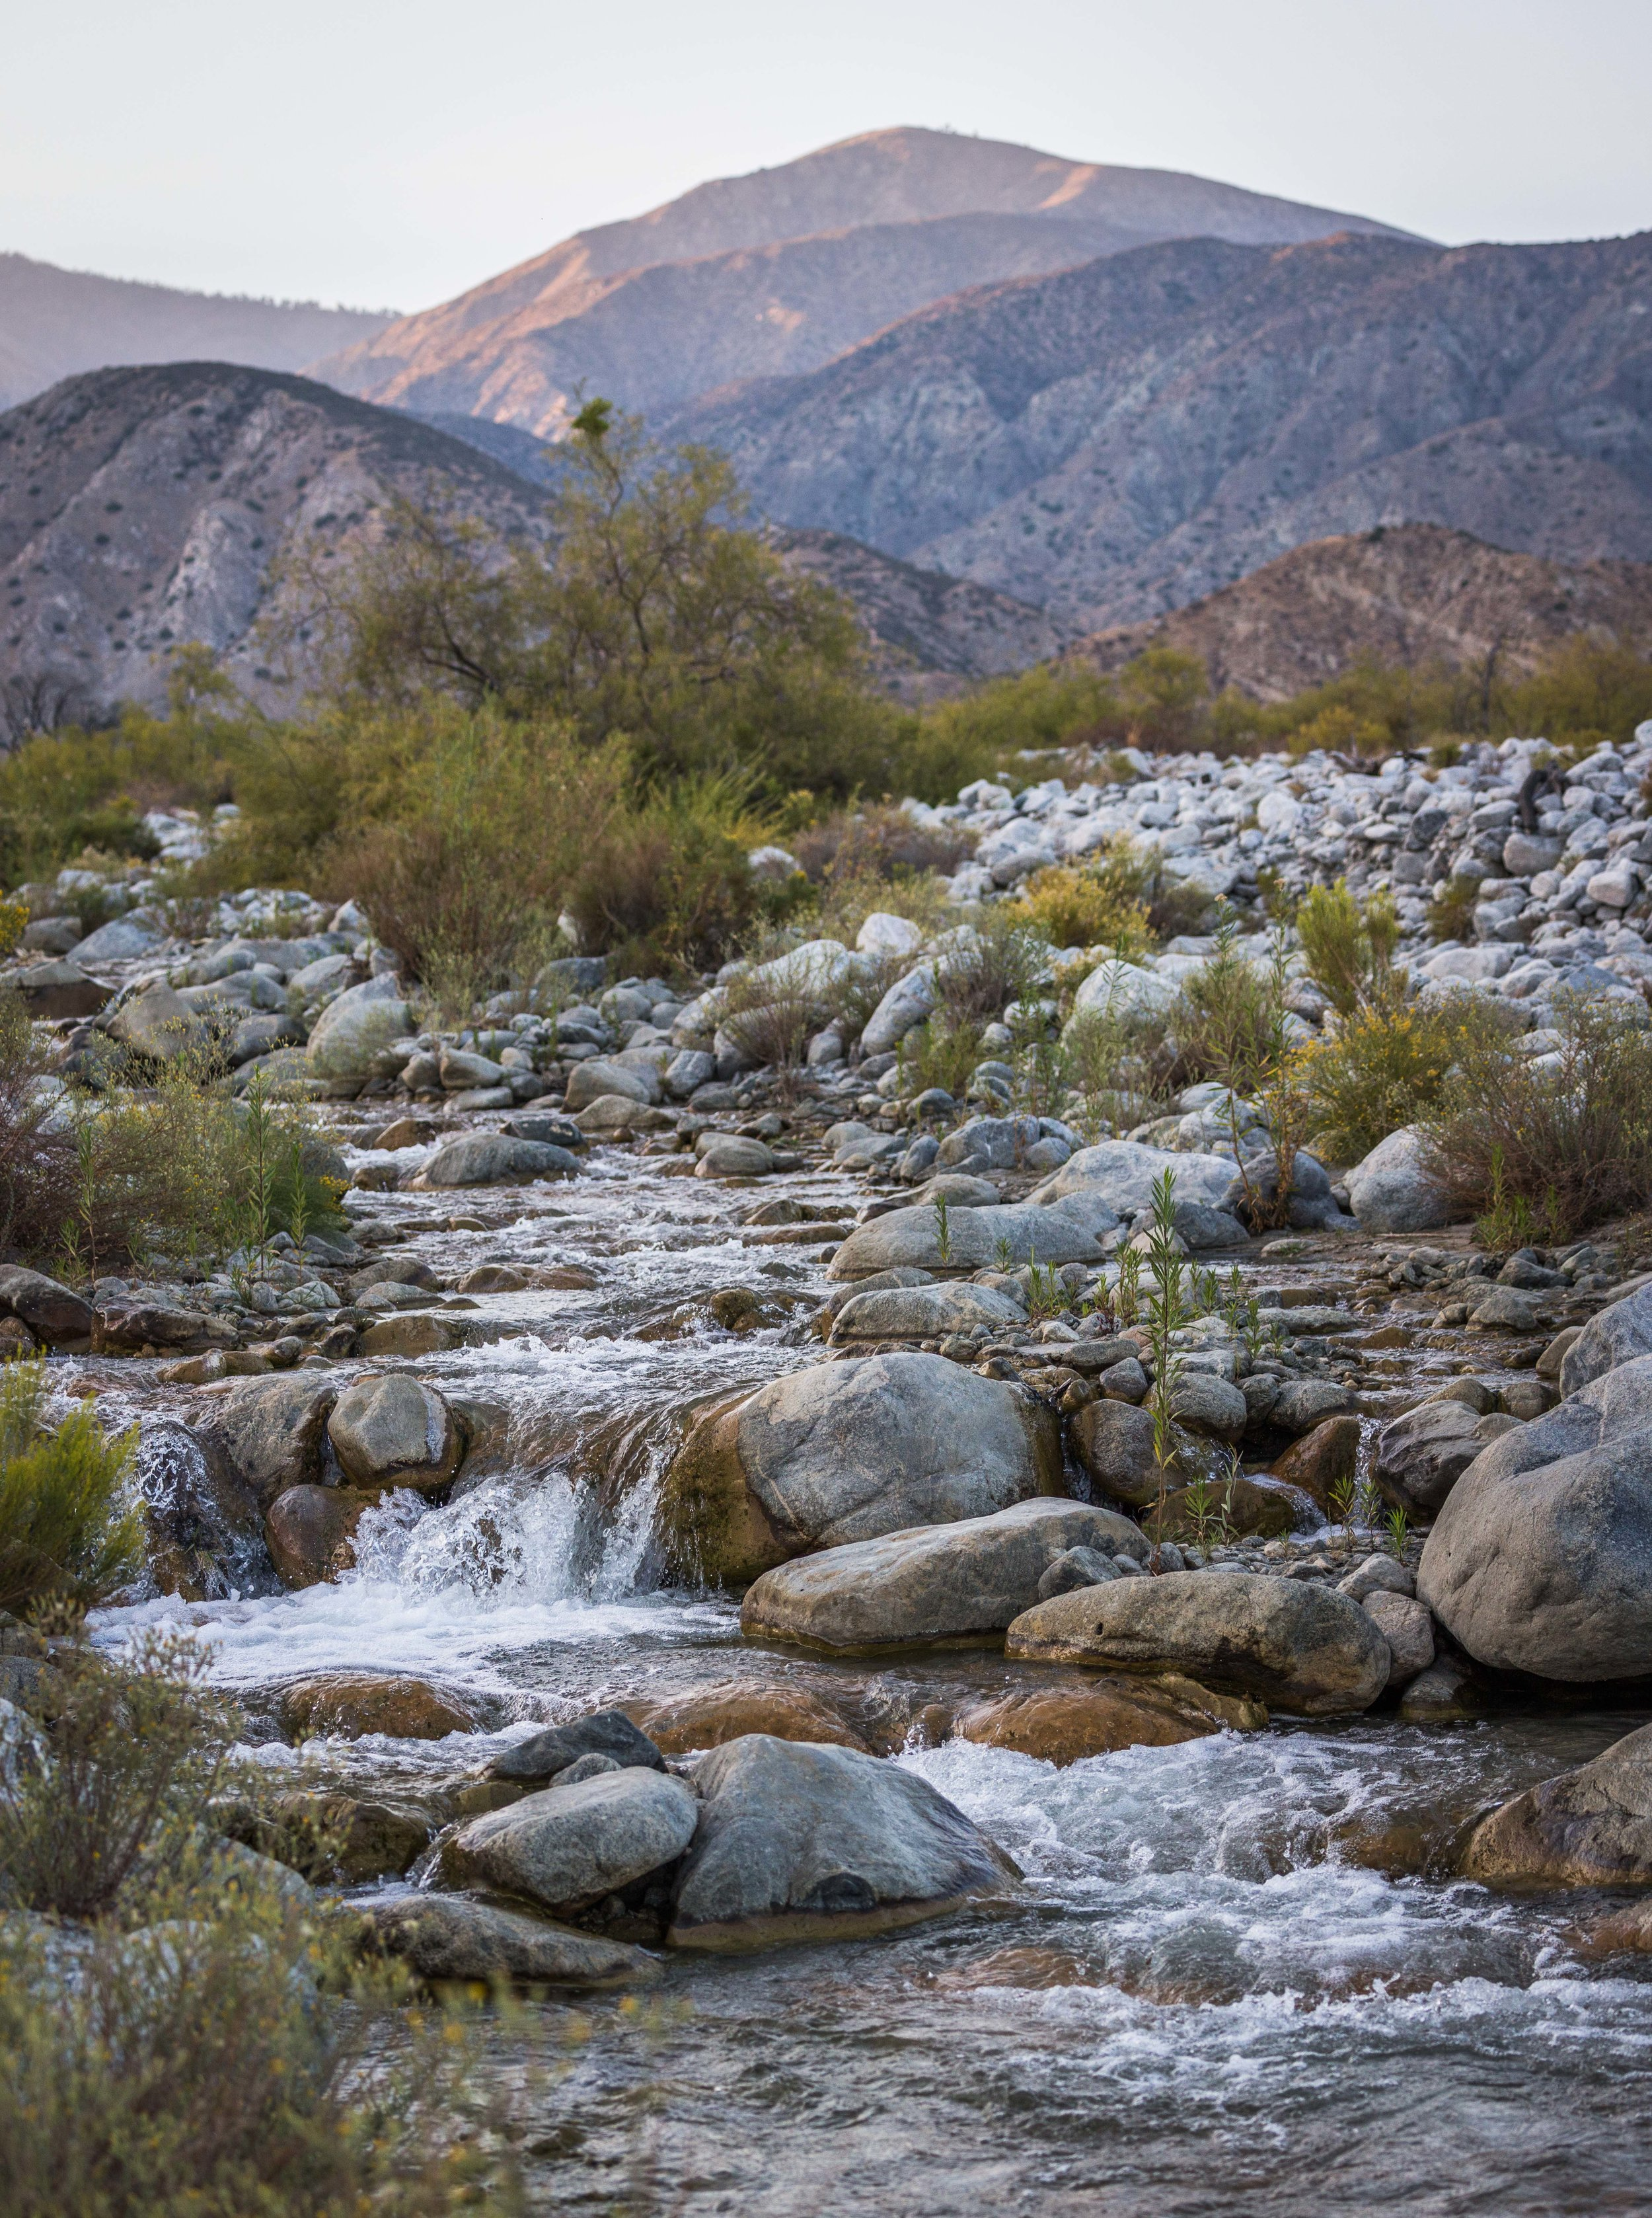 Whitewater River in the Sand to Snow National Monument - It can be accessed from the Whitewater Preserve and is also part of the San Gorgonio Wilderness.